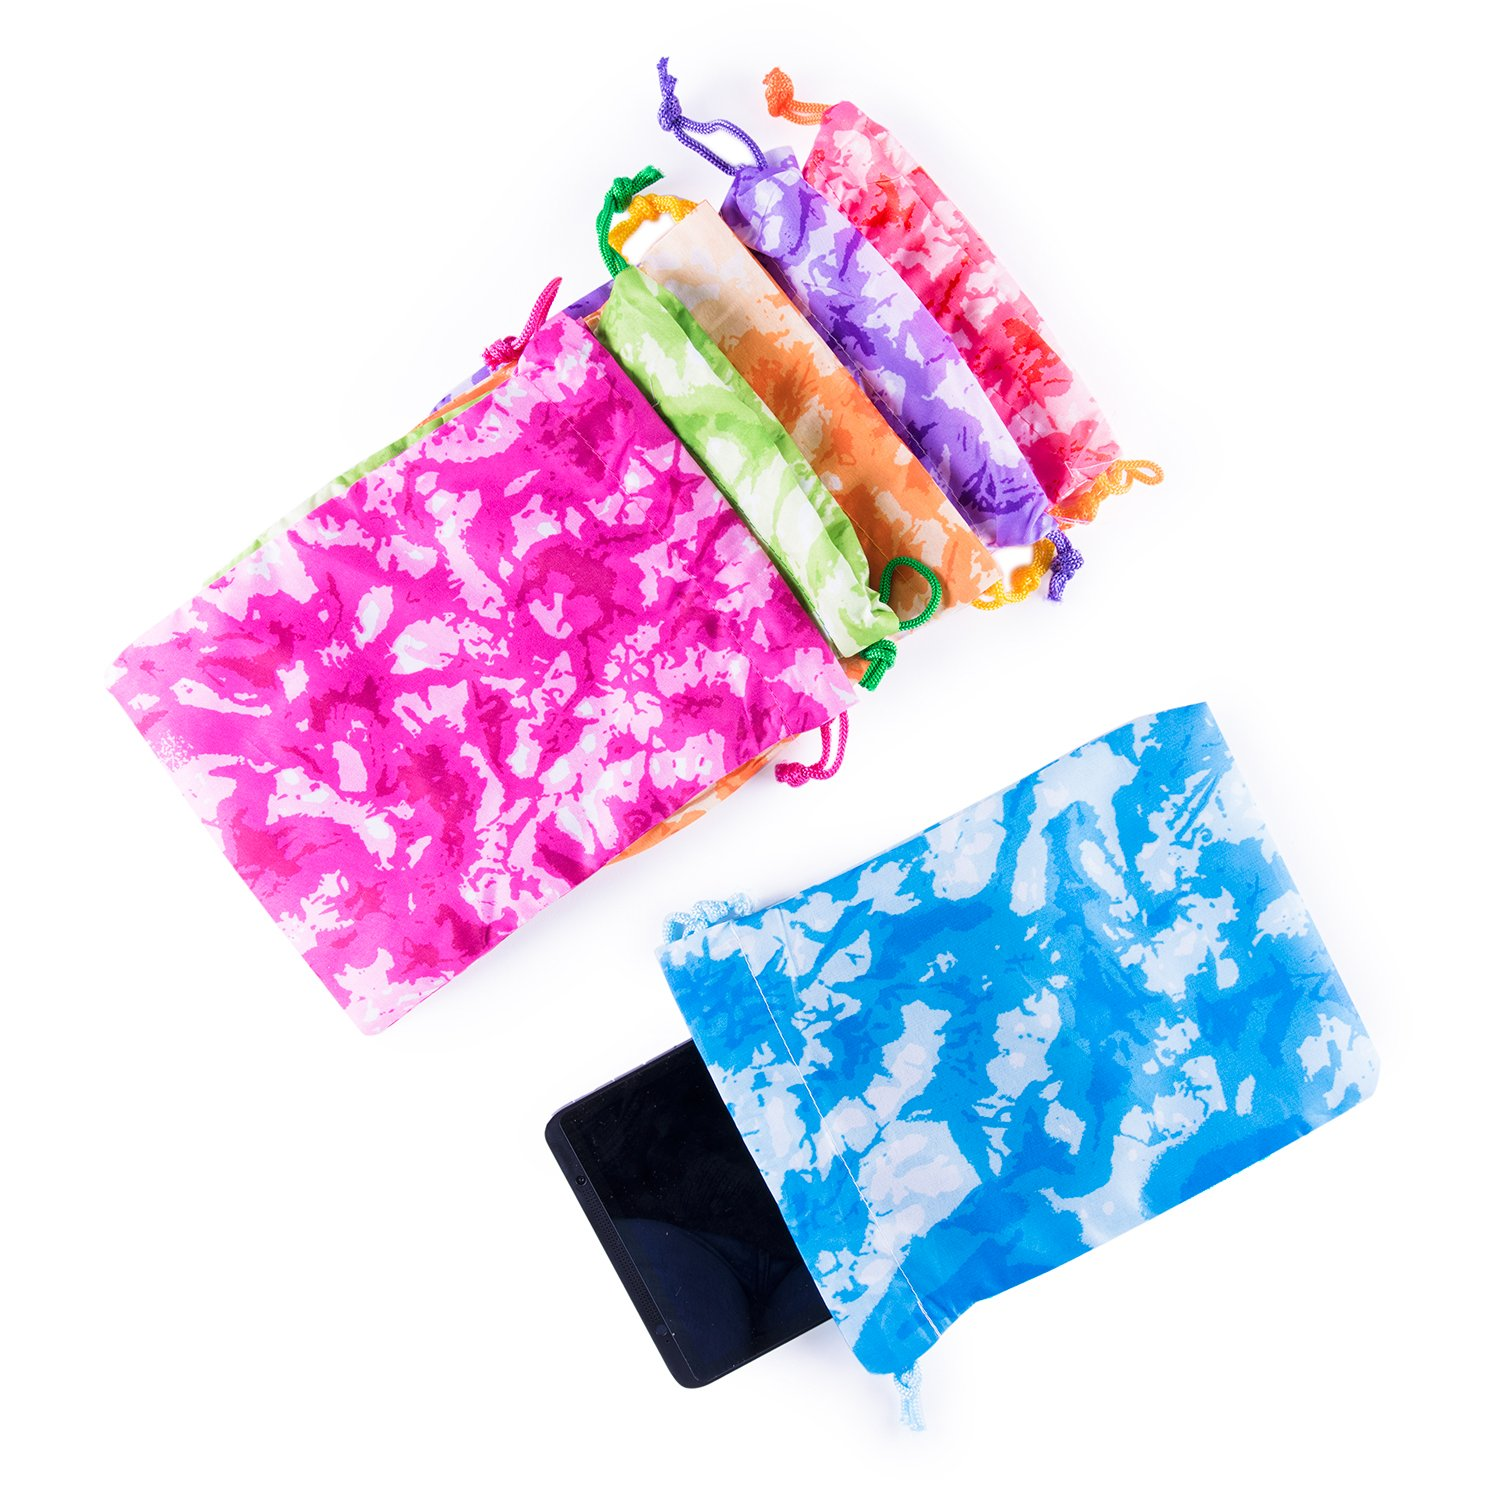 SZ043 Arts /& Crafts Activity Assorted 12 Pack Super Z Outlet Tie-Dye Camouflage Drawstring Bags Party Favors